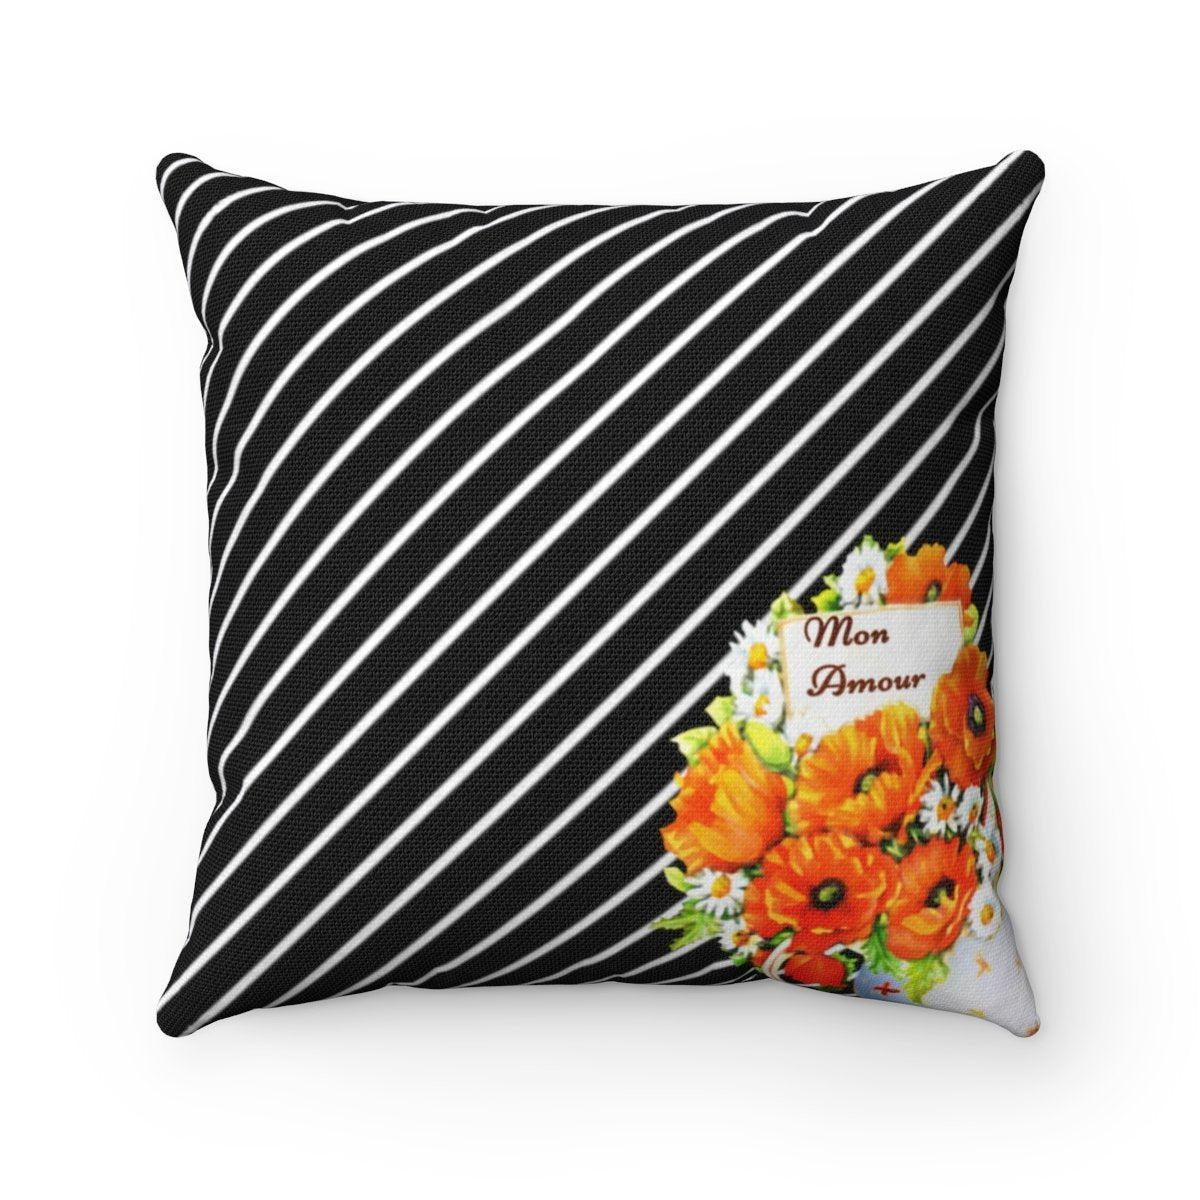 Paris | Love | mon amour | Valentine Striped Floral decorative cushion cover-Home Decor - Decorative Accents - Pillows & Throws - Decorative Pillows-Maison d'Elite-14x14-Très Elite